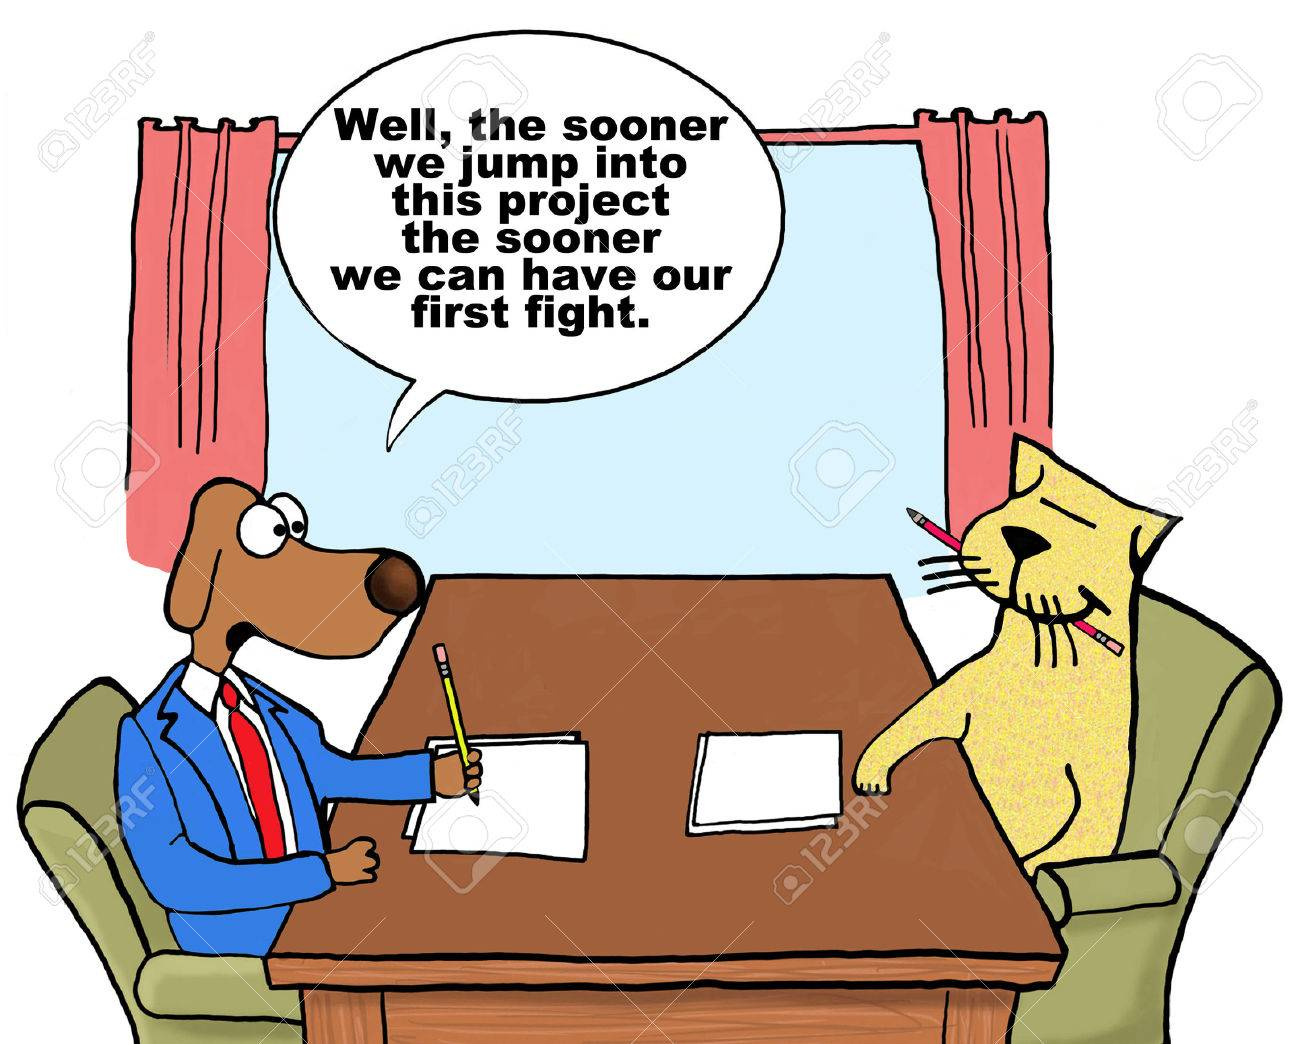 Cartoon on conflict management. - 38909924